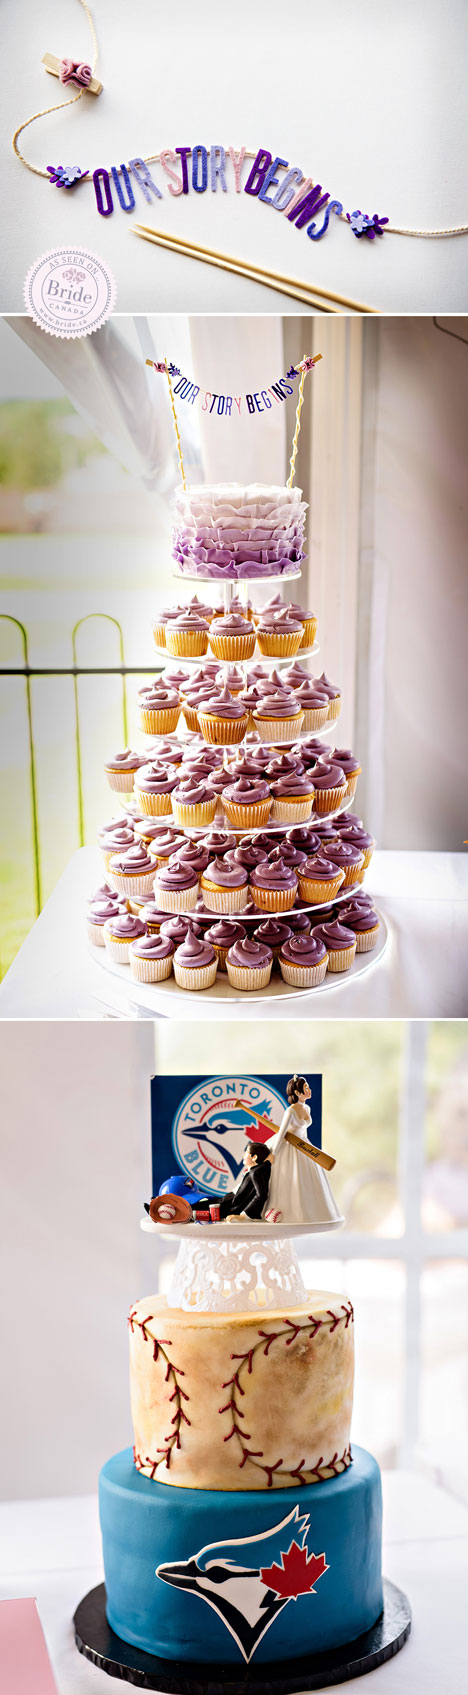 Wedding cupcake tower with ombre cutting cake and blue jays baseball grooms cake